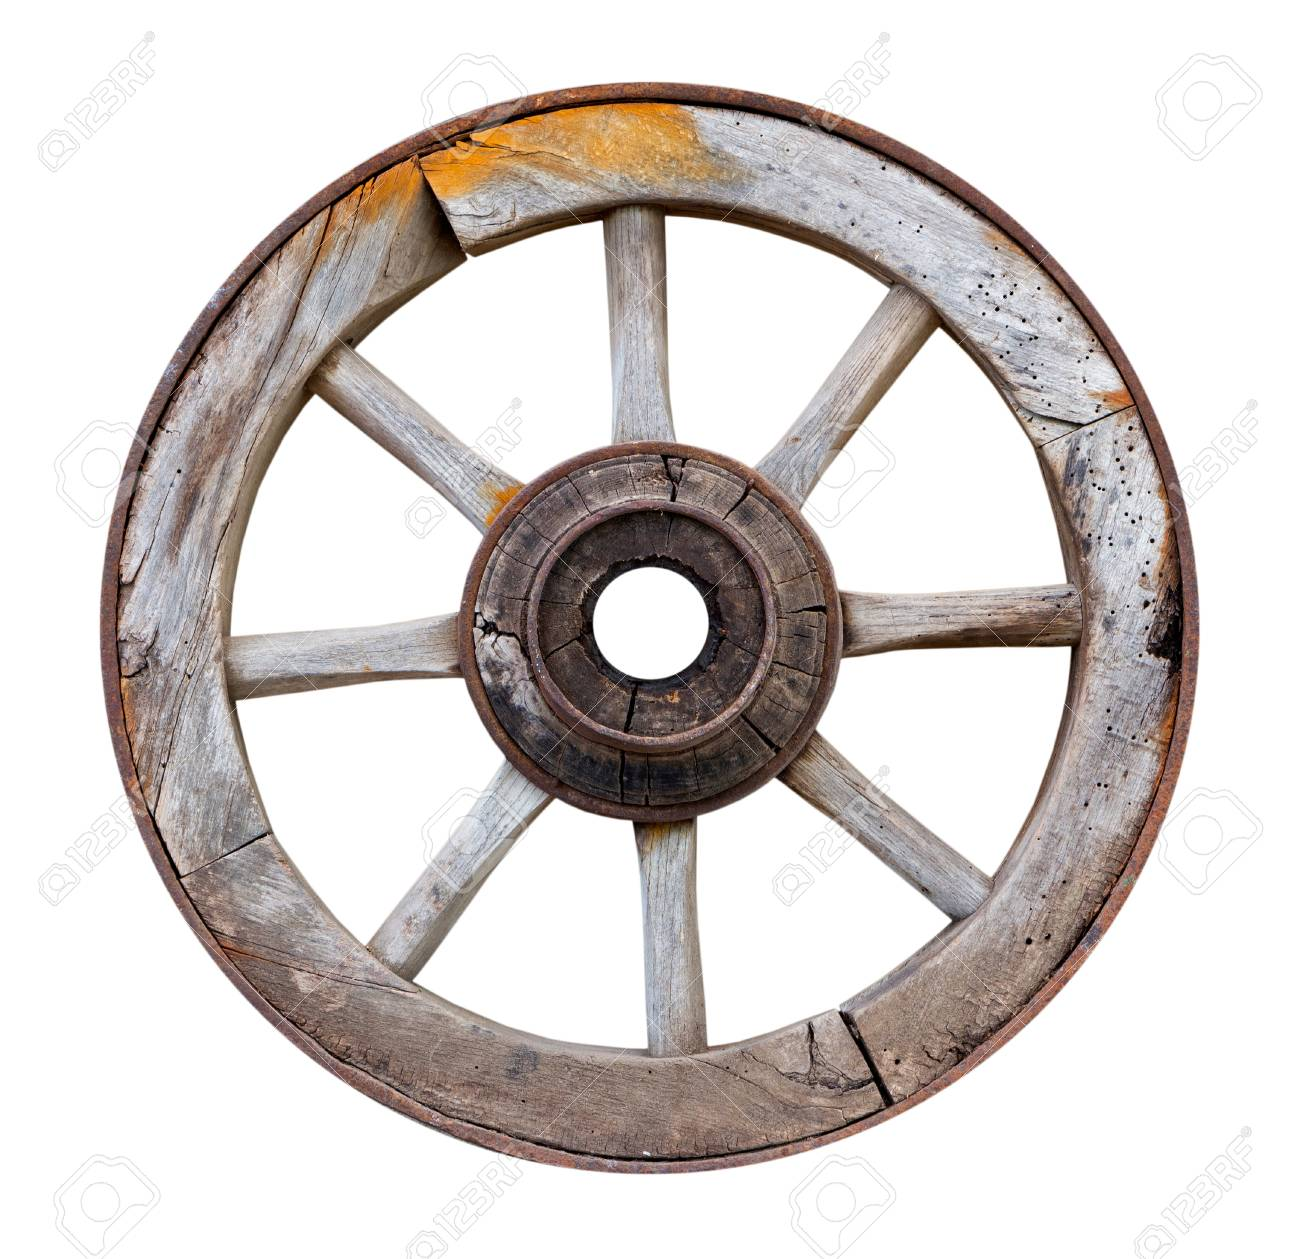 Old wooden wheel on a white background - 29752530